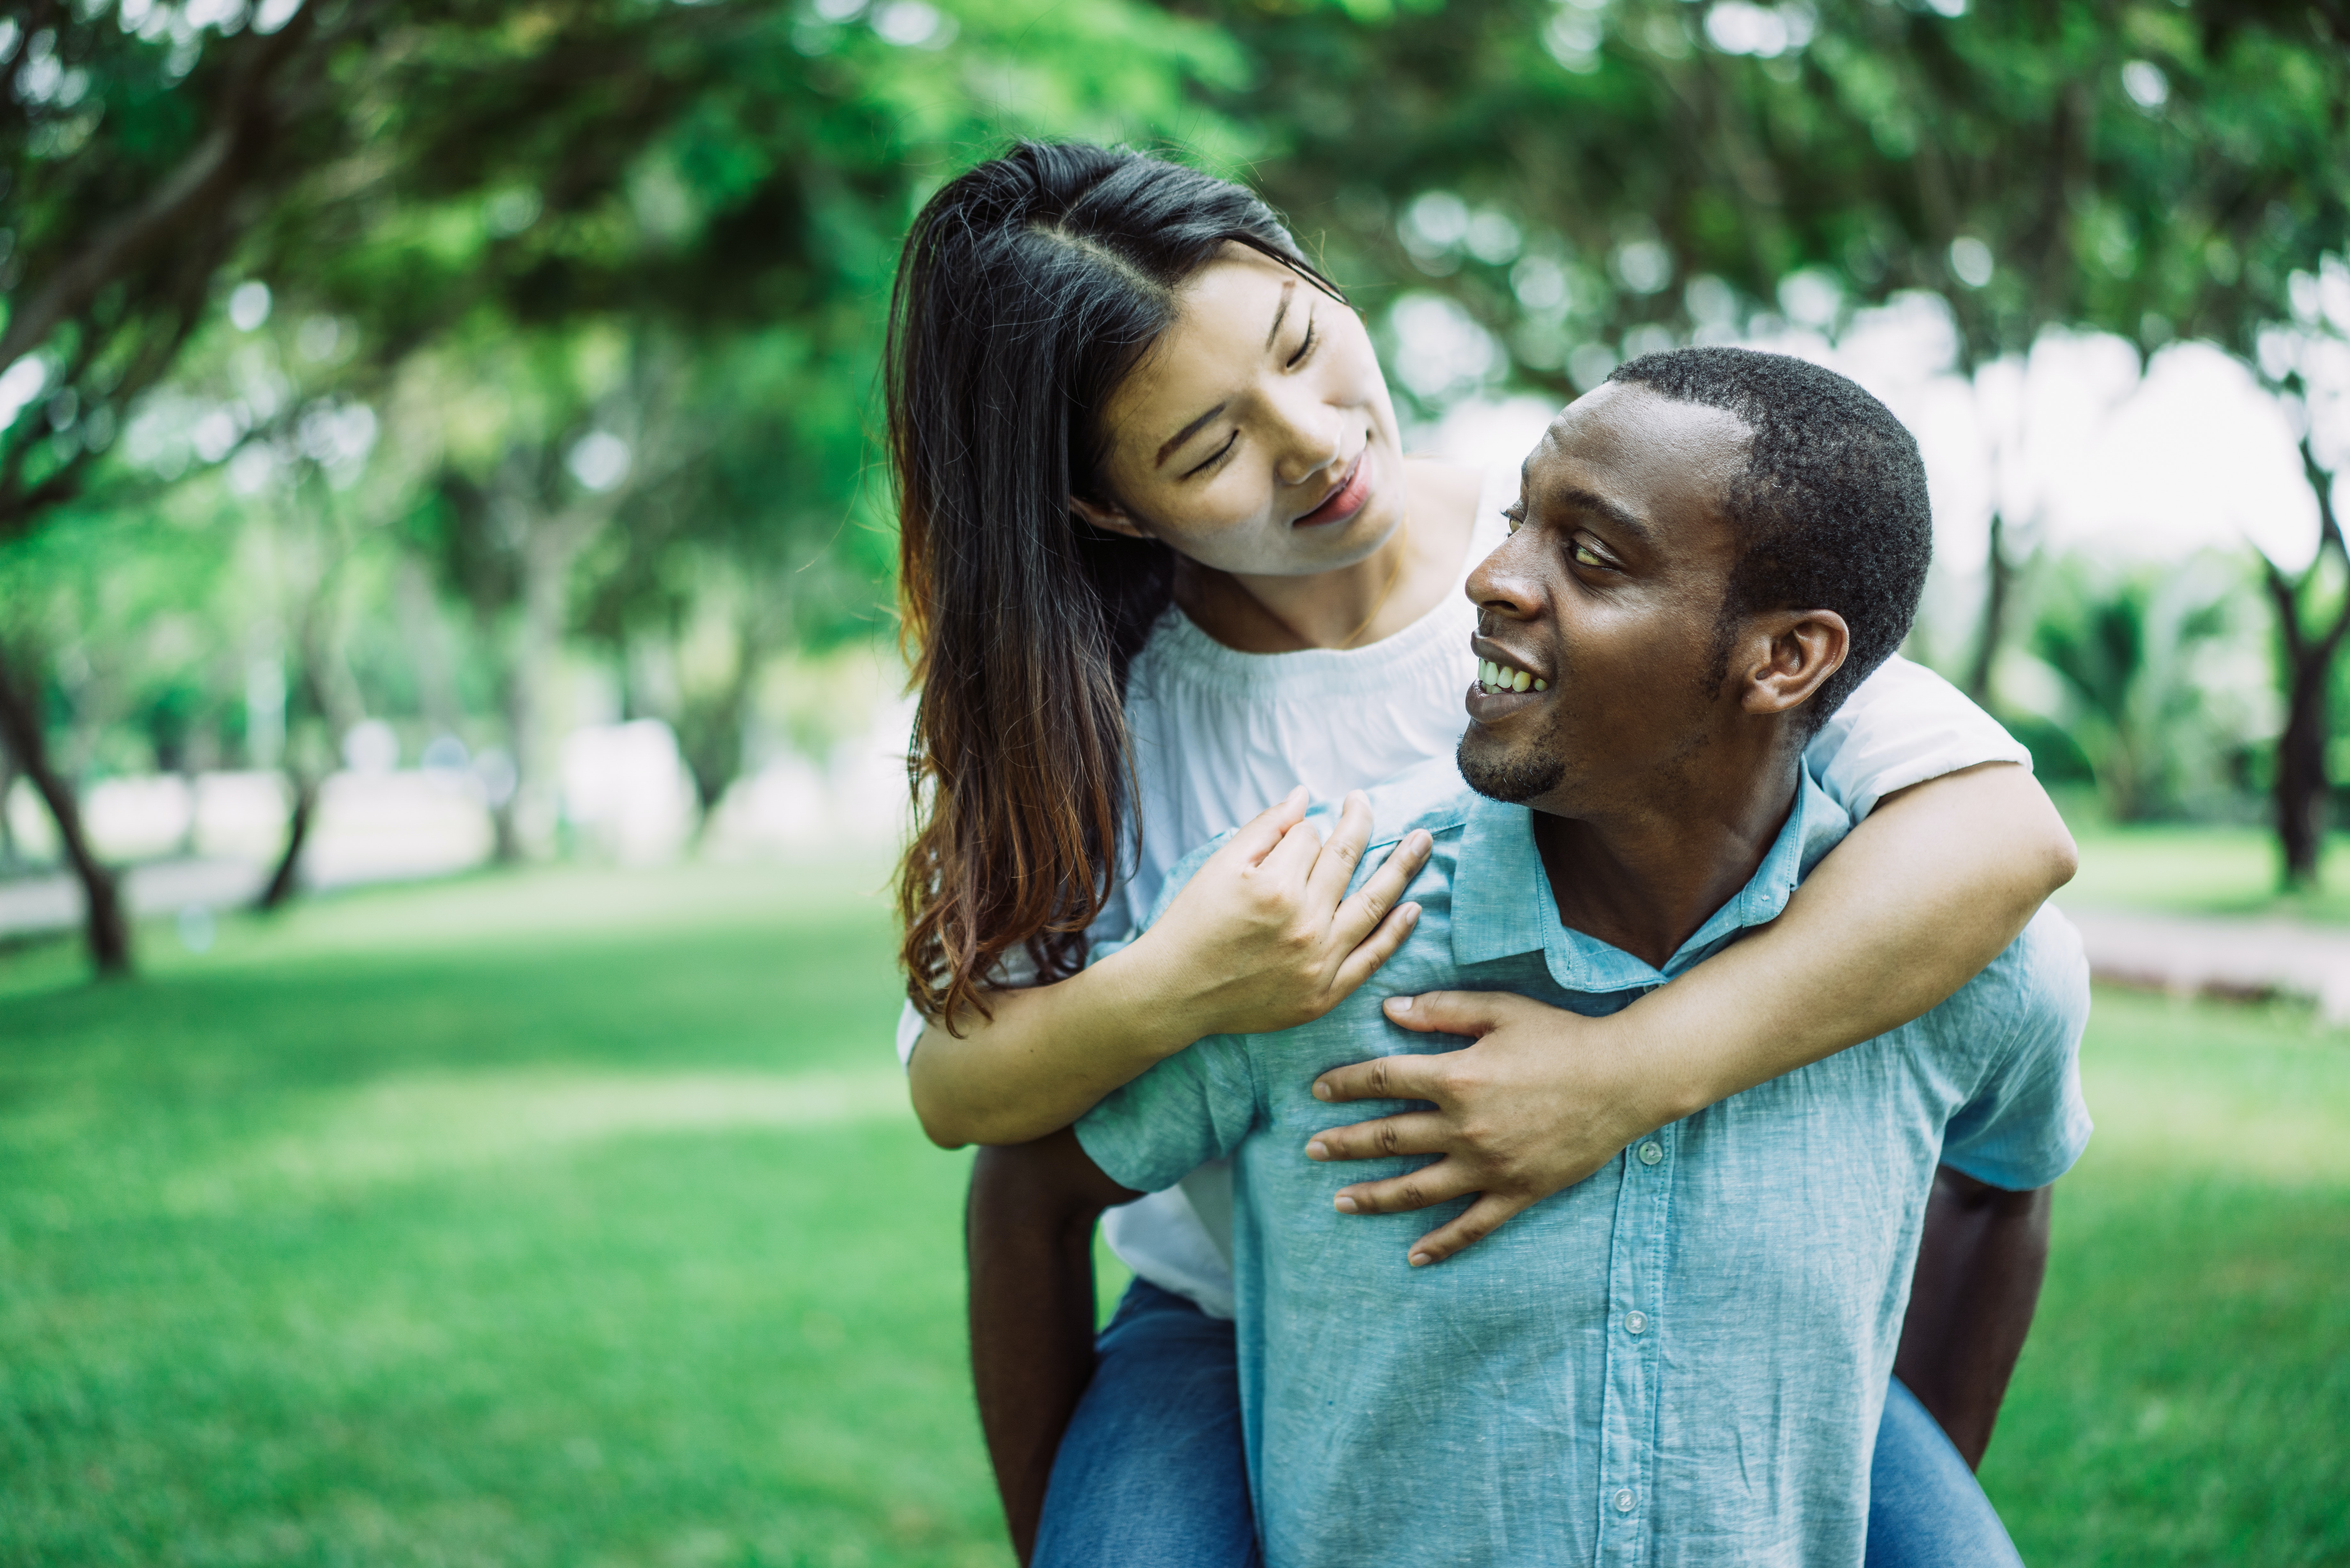 3 Myers-Briggs Personality Types That Fall In Love Most